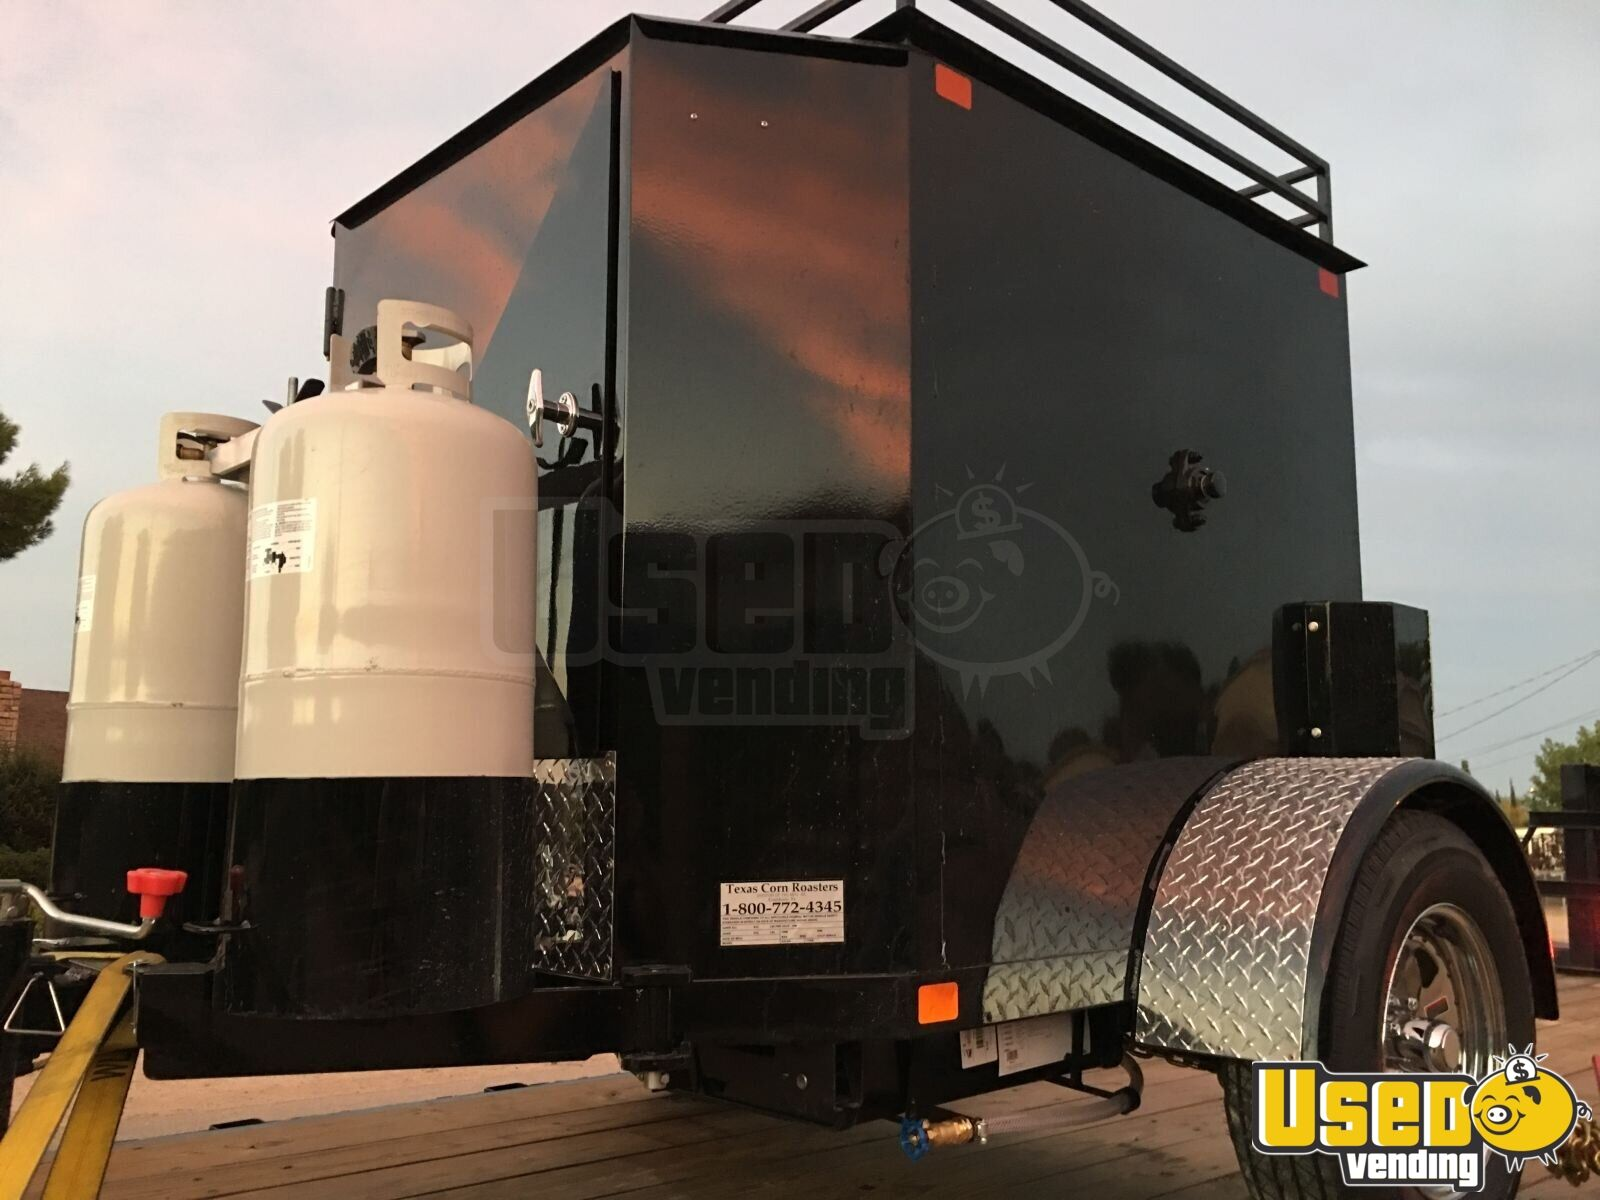 2018 Texas Corn Roaster Corn Roasting Trailer Fire Extinguisher California for Sale - 5